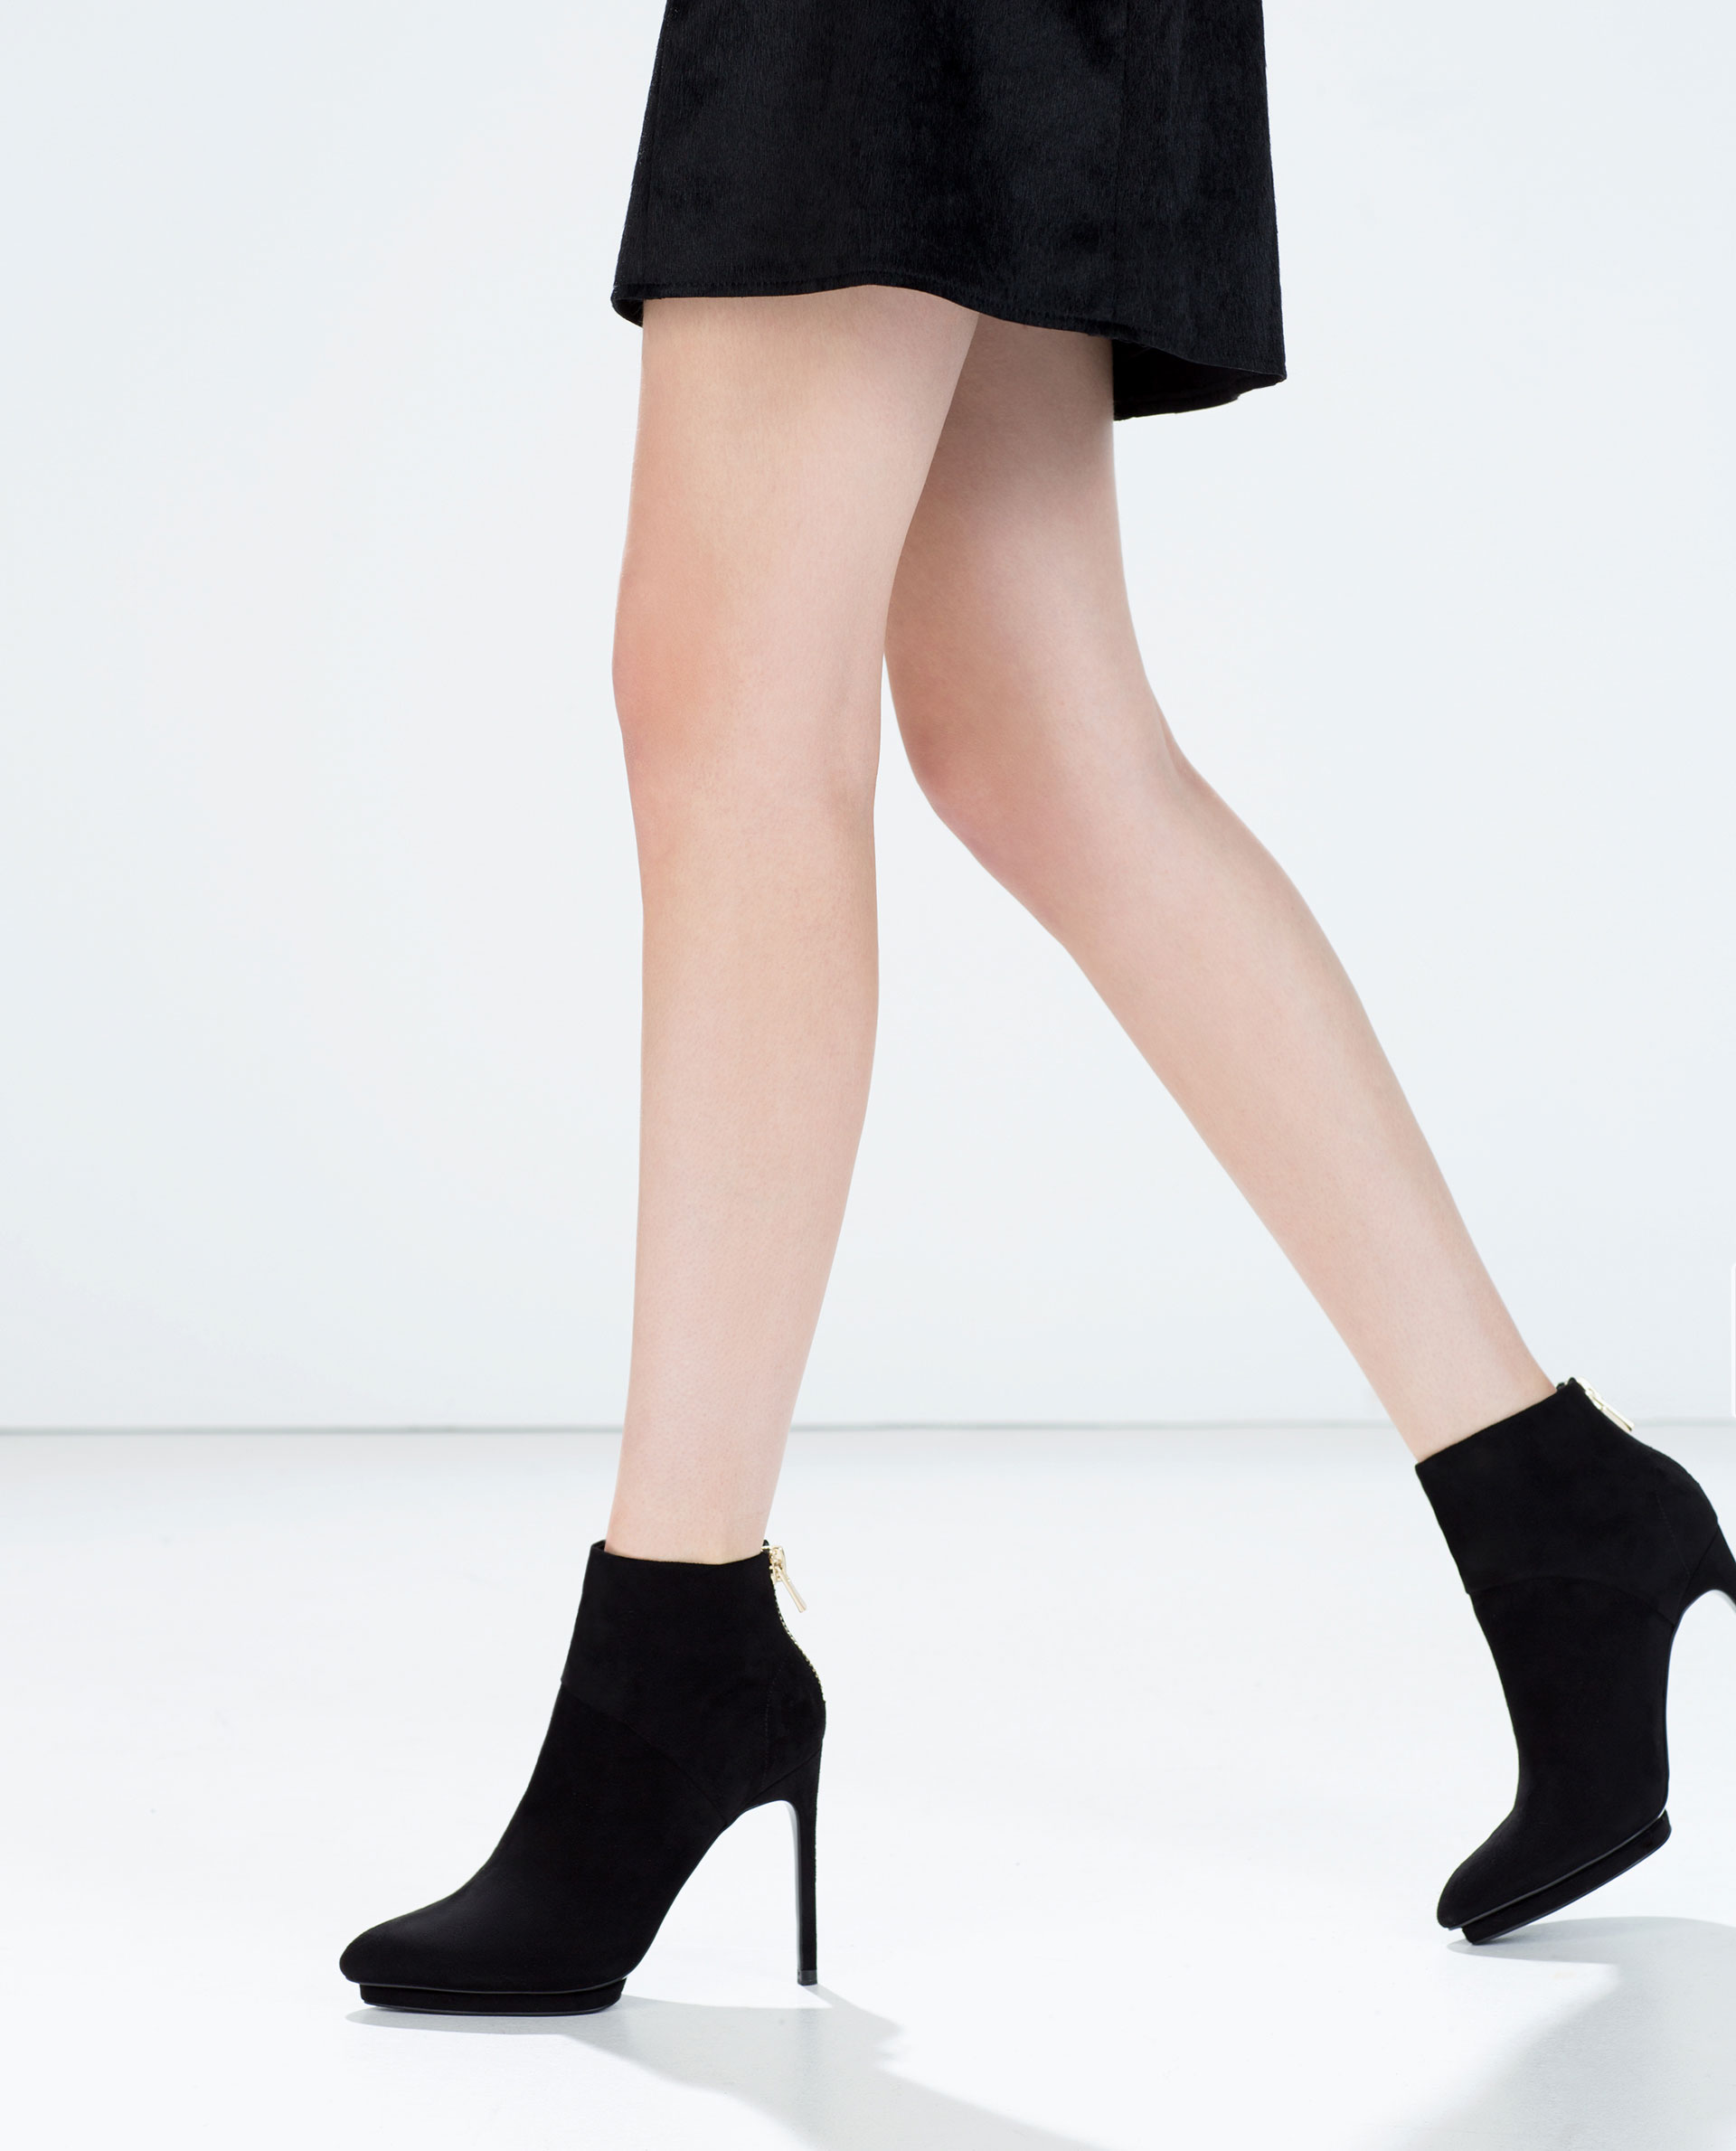 High heel platform ankle boot